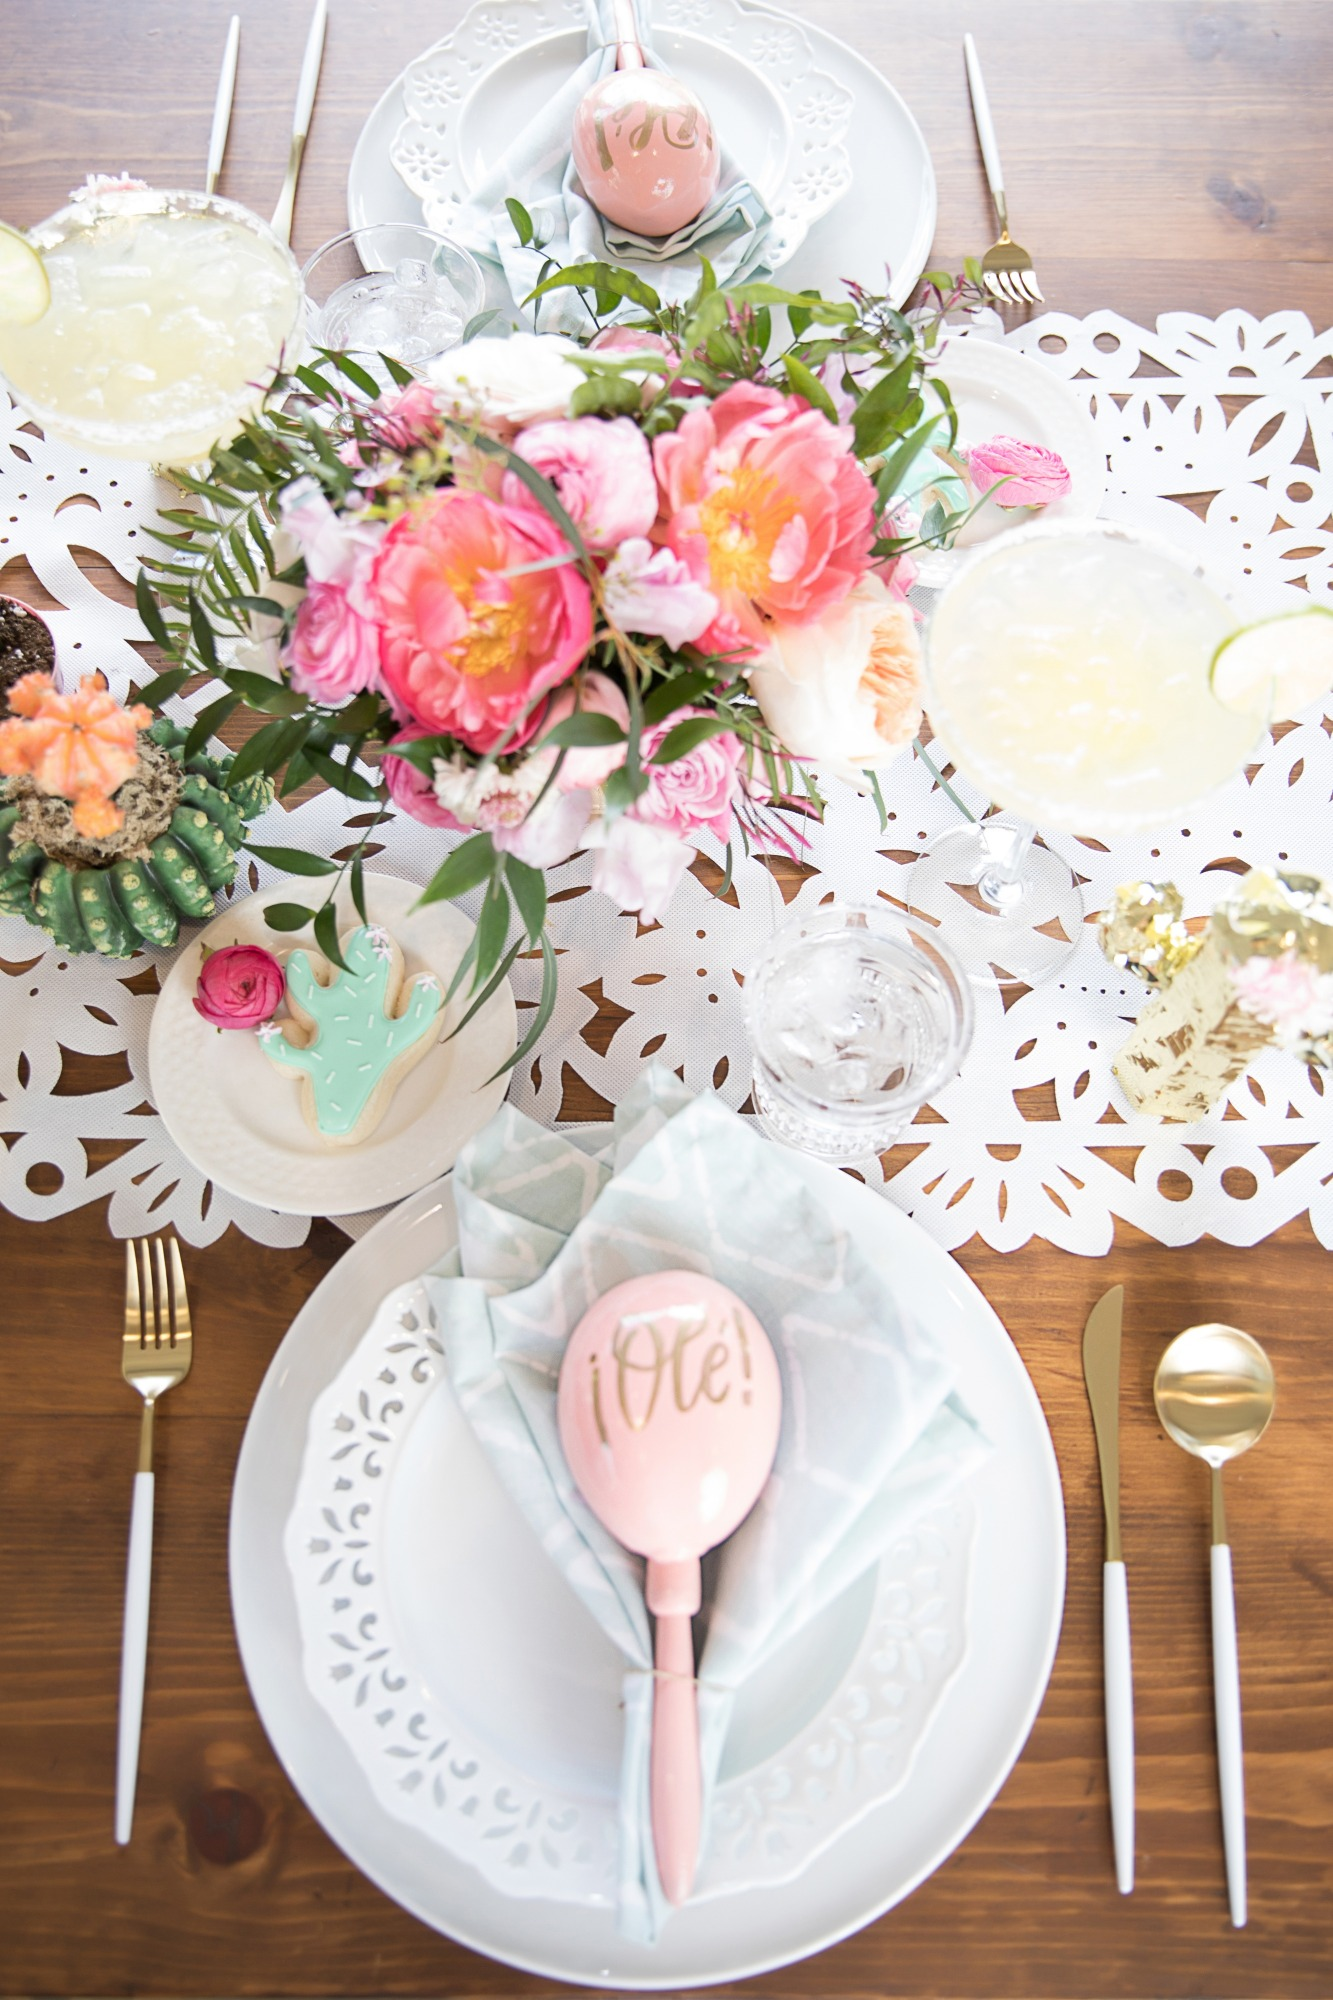 Place Setting and Tablescape from Chic Floral Fiesta Styled by One Stylish Party | Black Twine